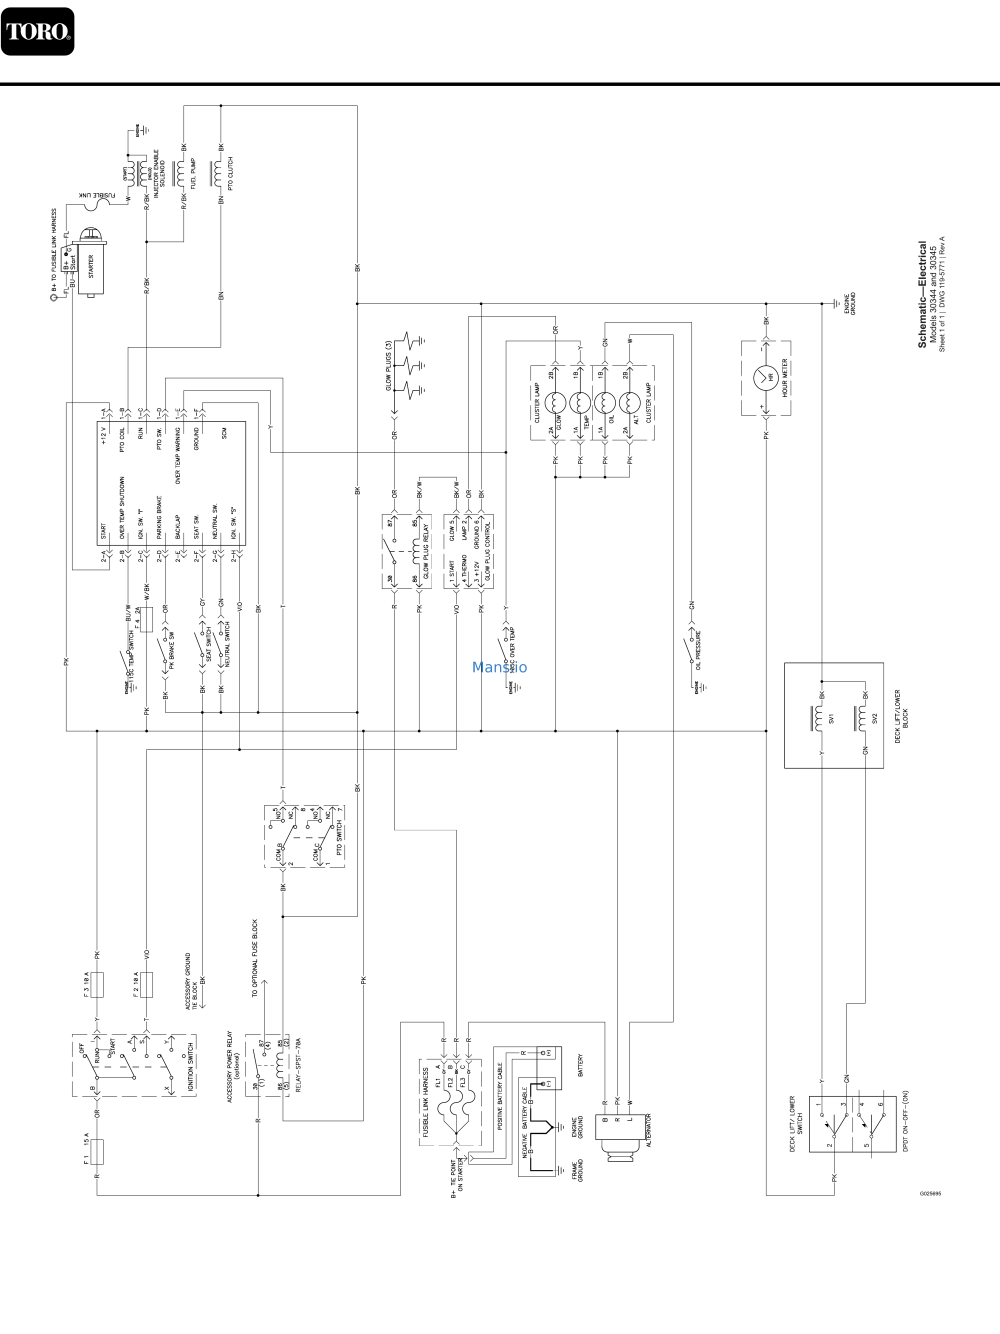 medium resolution of toro groundsmaster 3280 d 2wd 30344 schematic drawing electricaltoro groundsmaster 3280 d 2wd